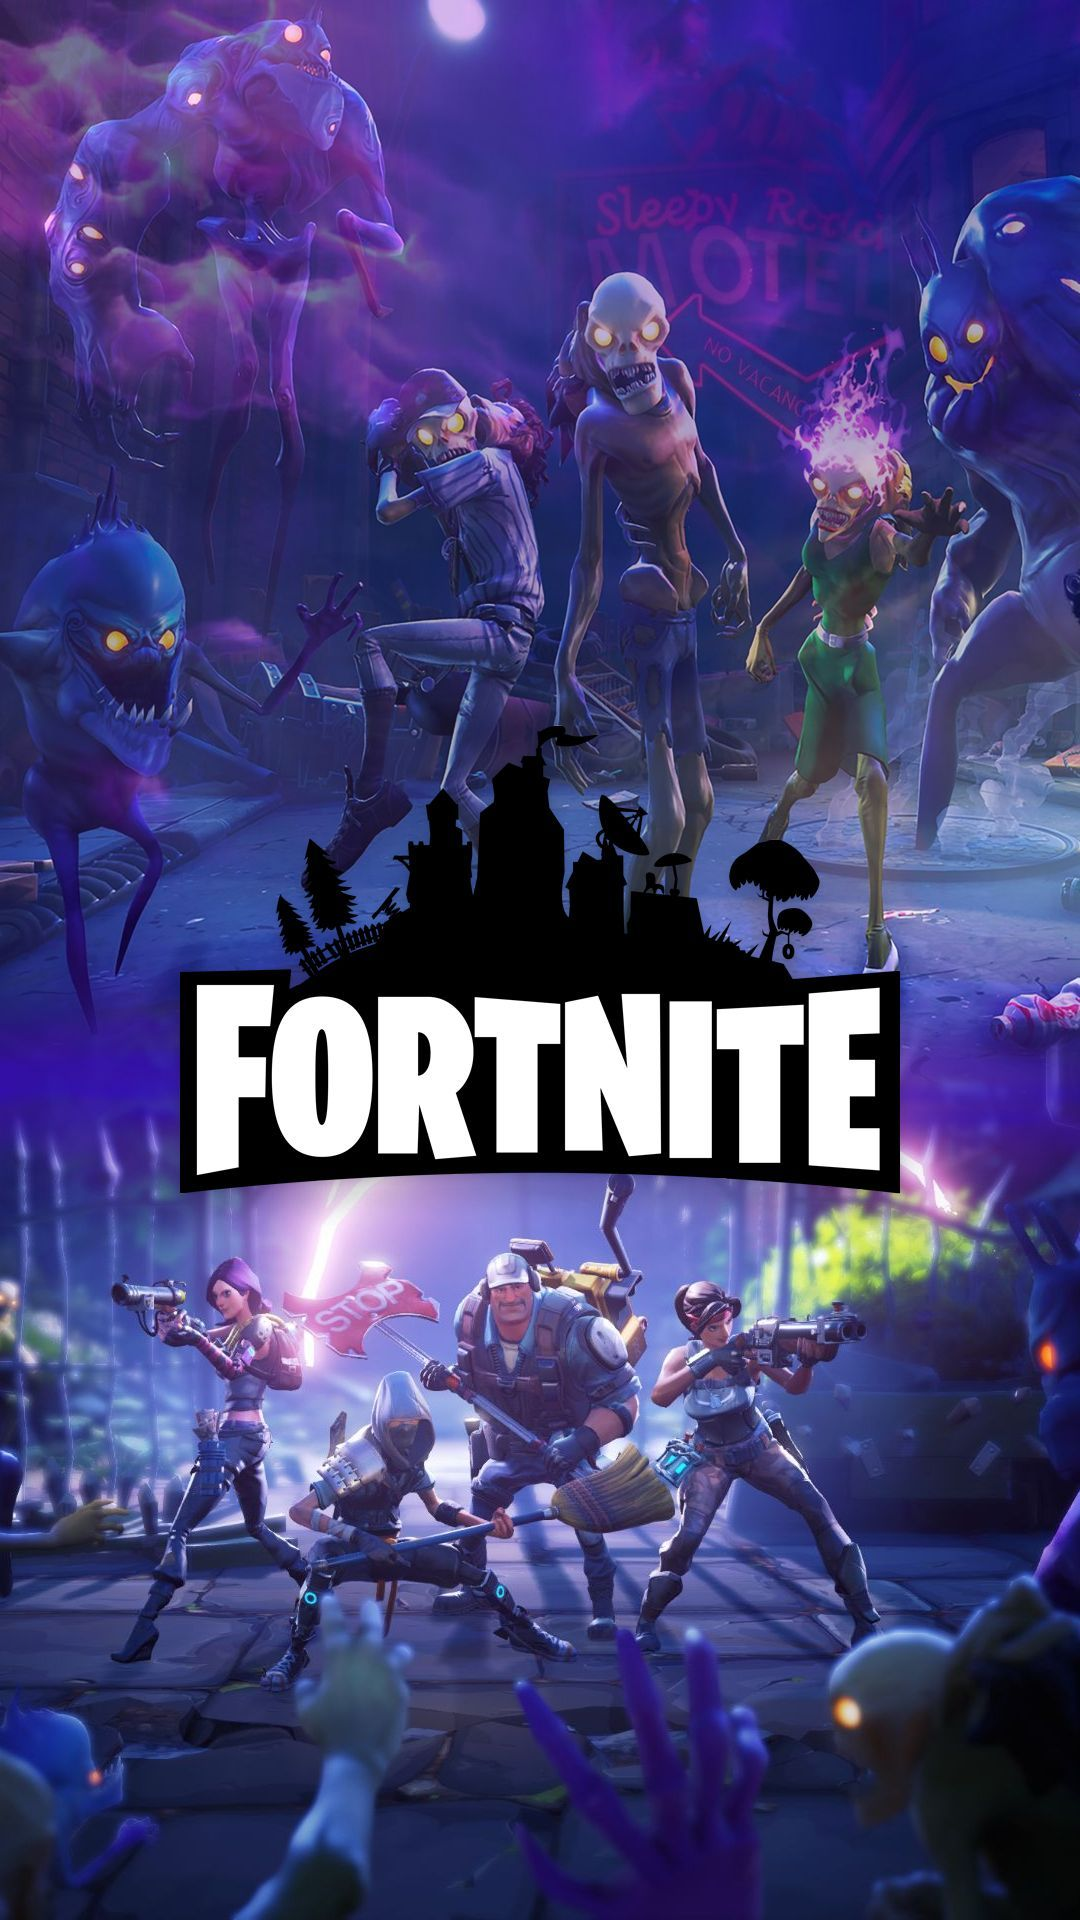 Pin oleh Markruse17 di Wallpaper Fortnite di 2020 (Dengan